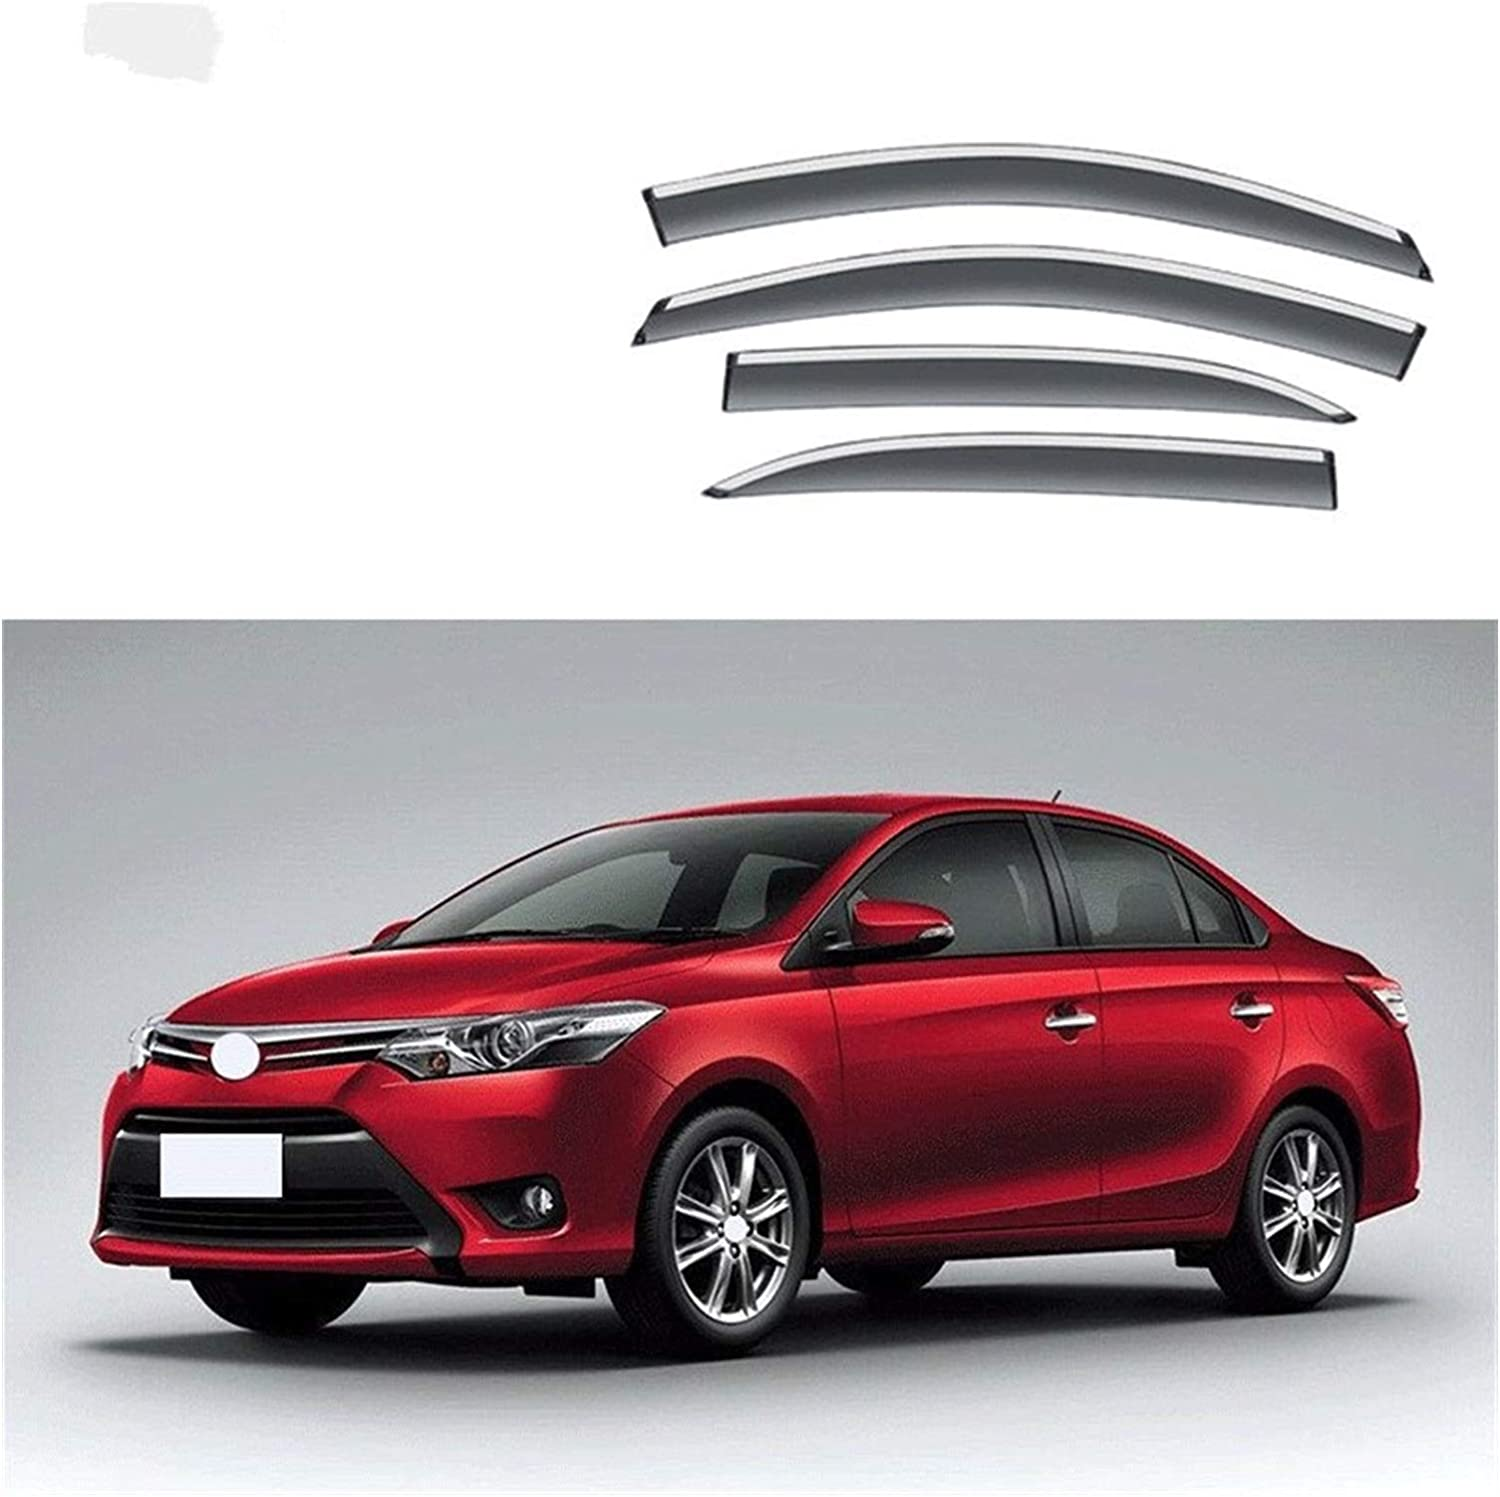 MYDH Window Visor Deflectors for 2014-2018 Ra Soldering Vios Inventory cleanup selling sale Toyota